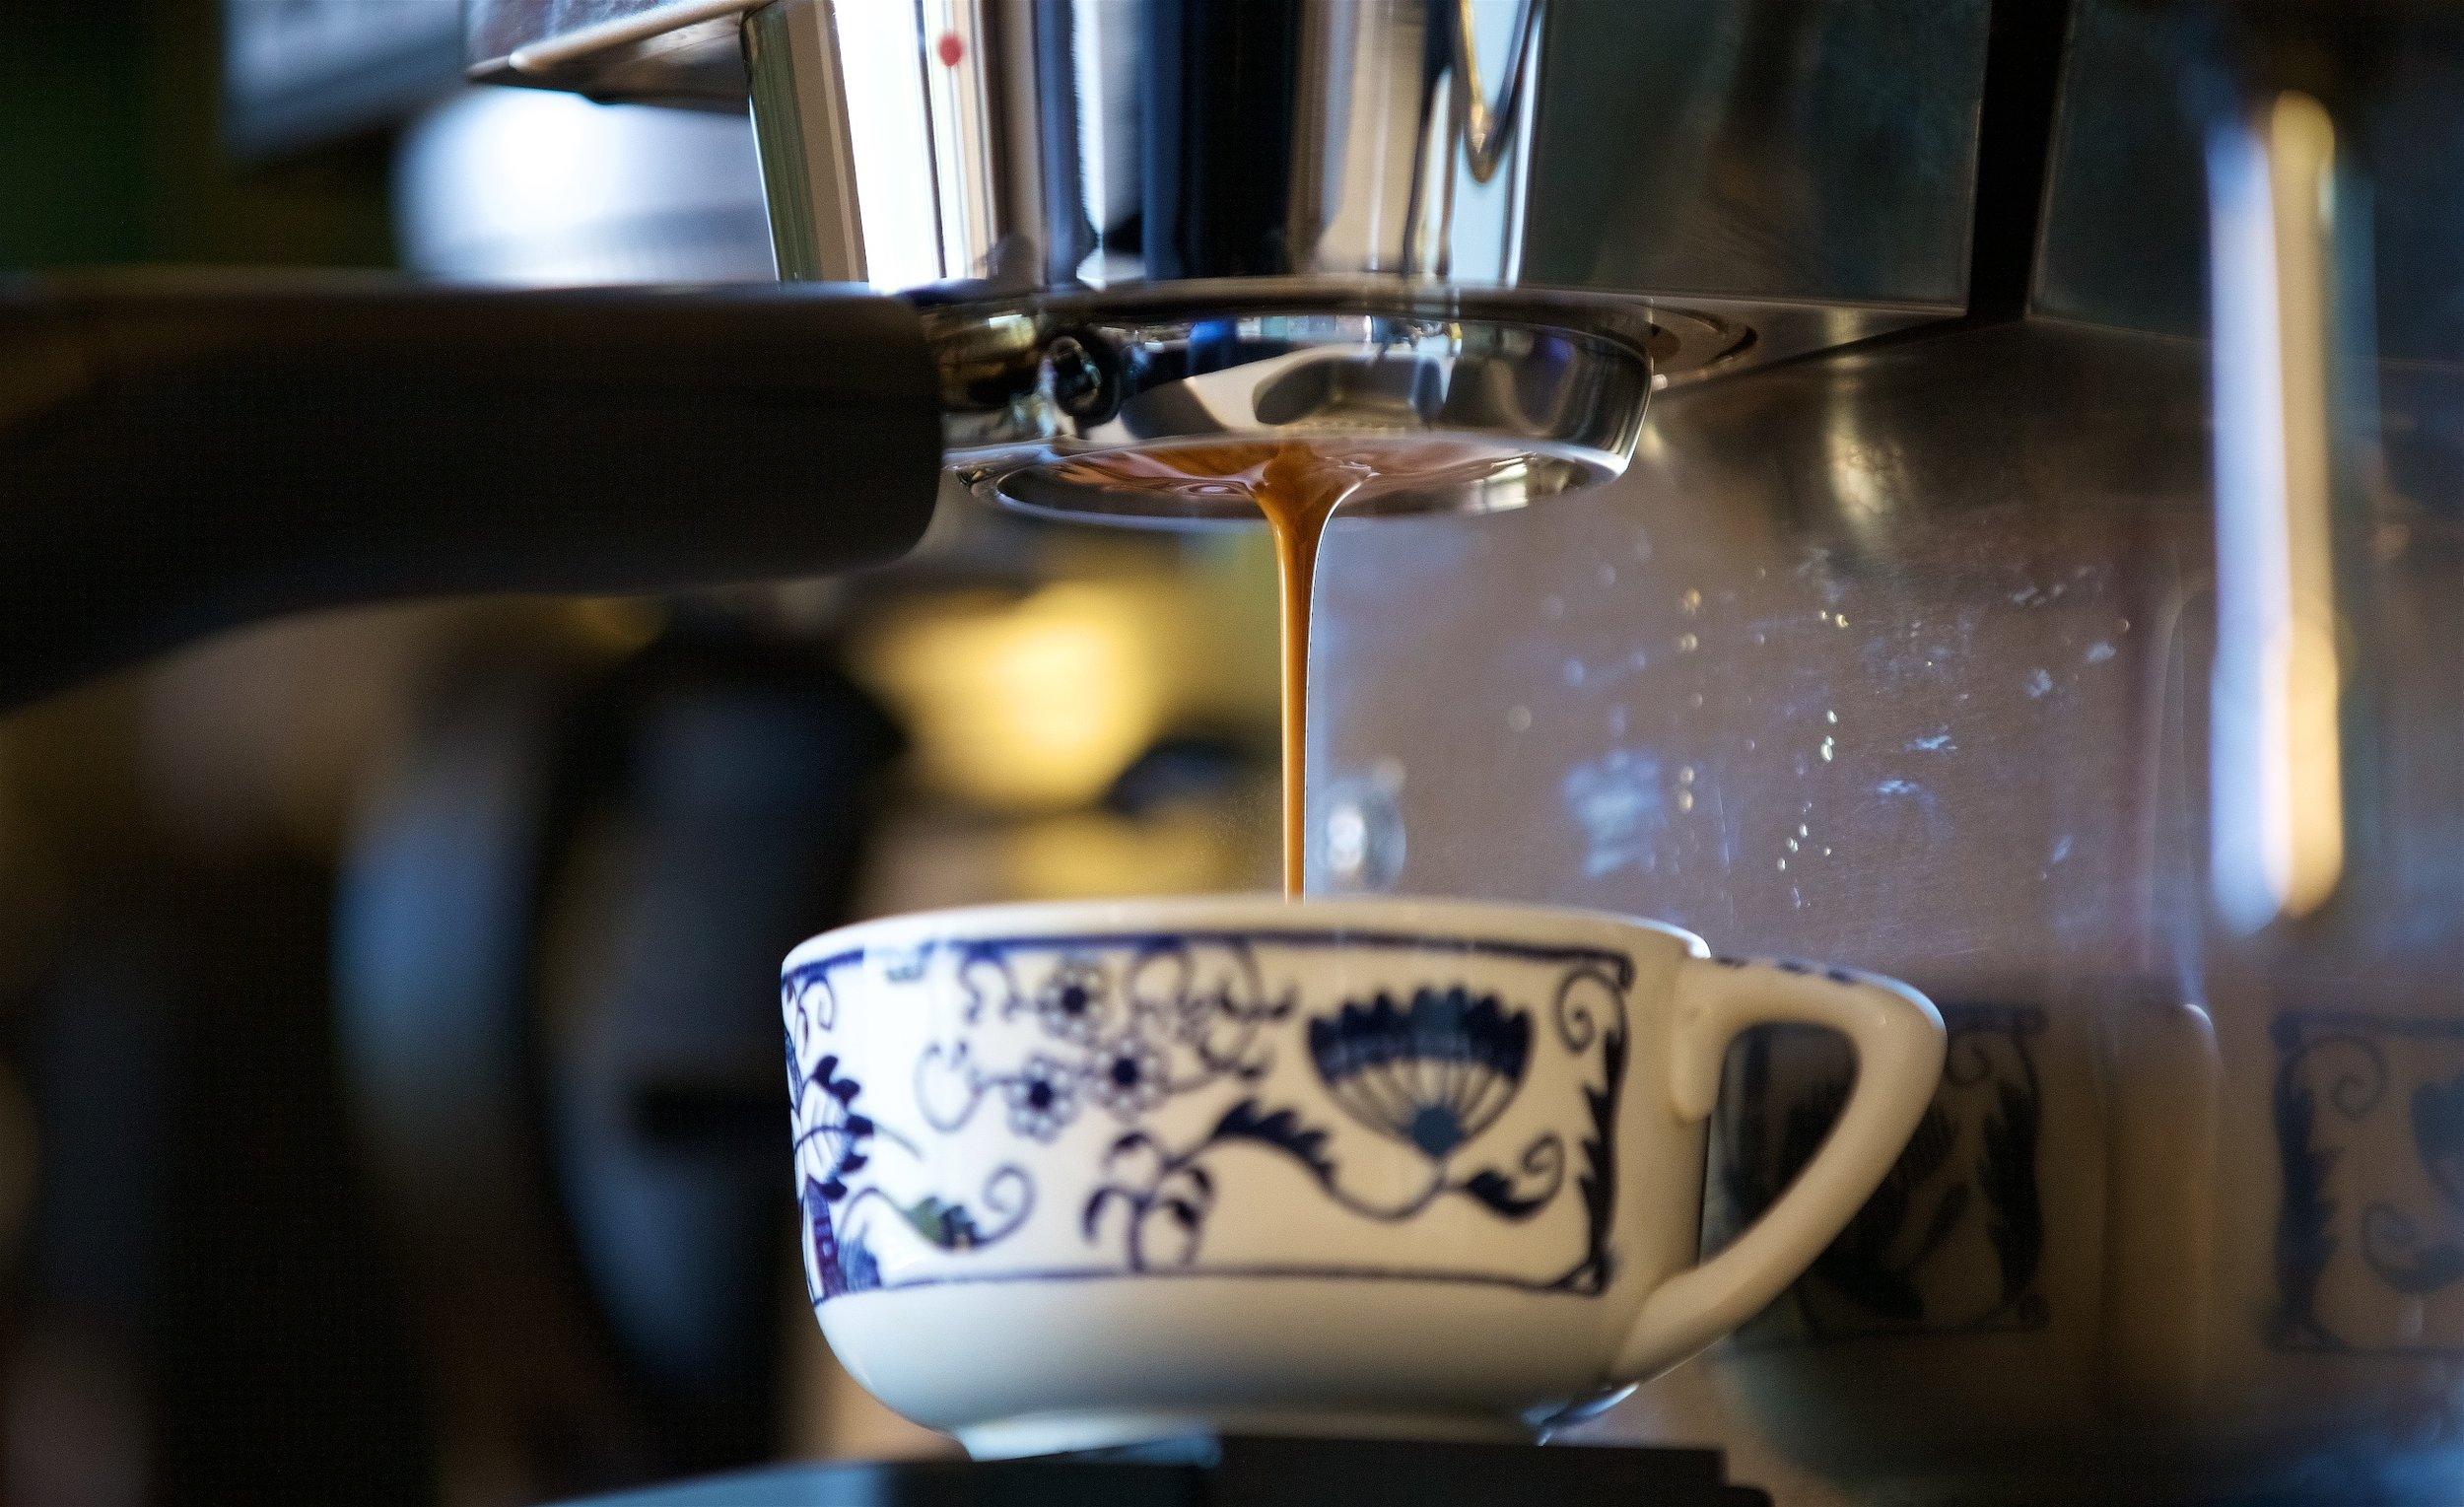 Near the end of a pour the espresso consolidates into a single thick stream of a brown color.